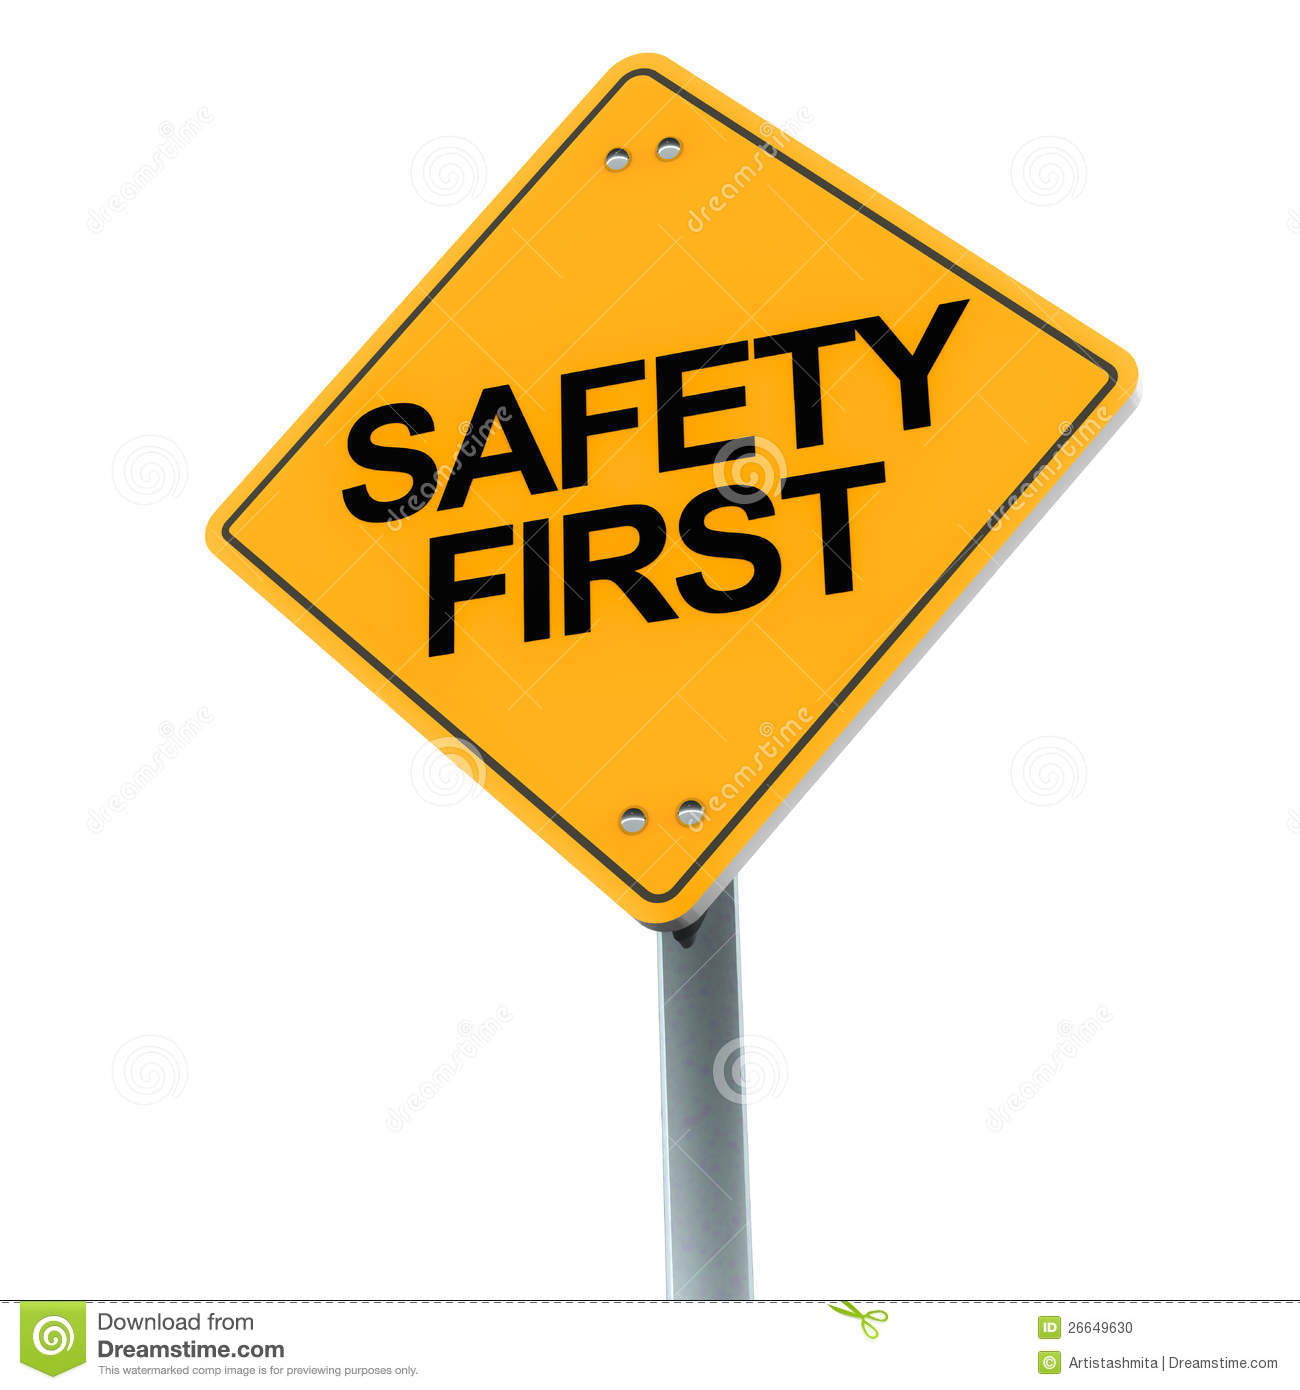 Safety First Road Sign On Clean Backgrou-Safety First Road Sign On Clean Background Showing Concern For Safety-12